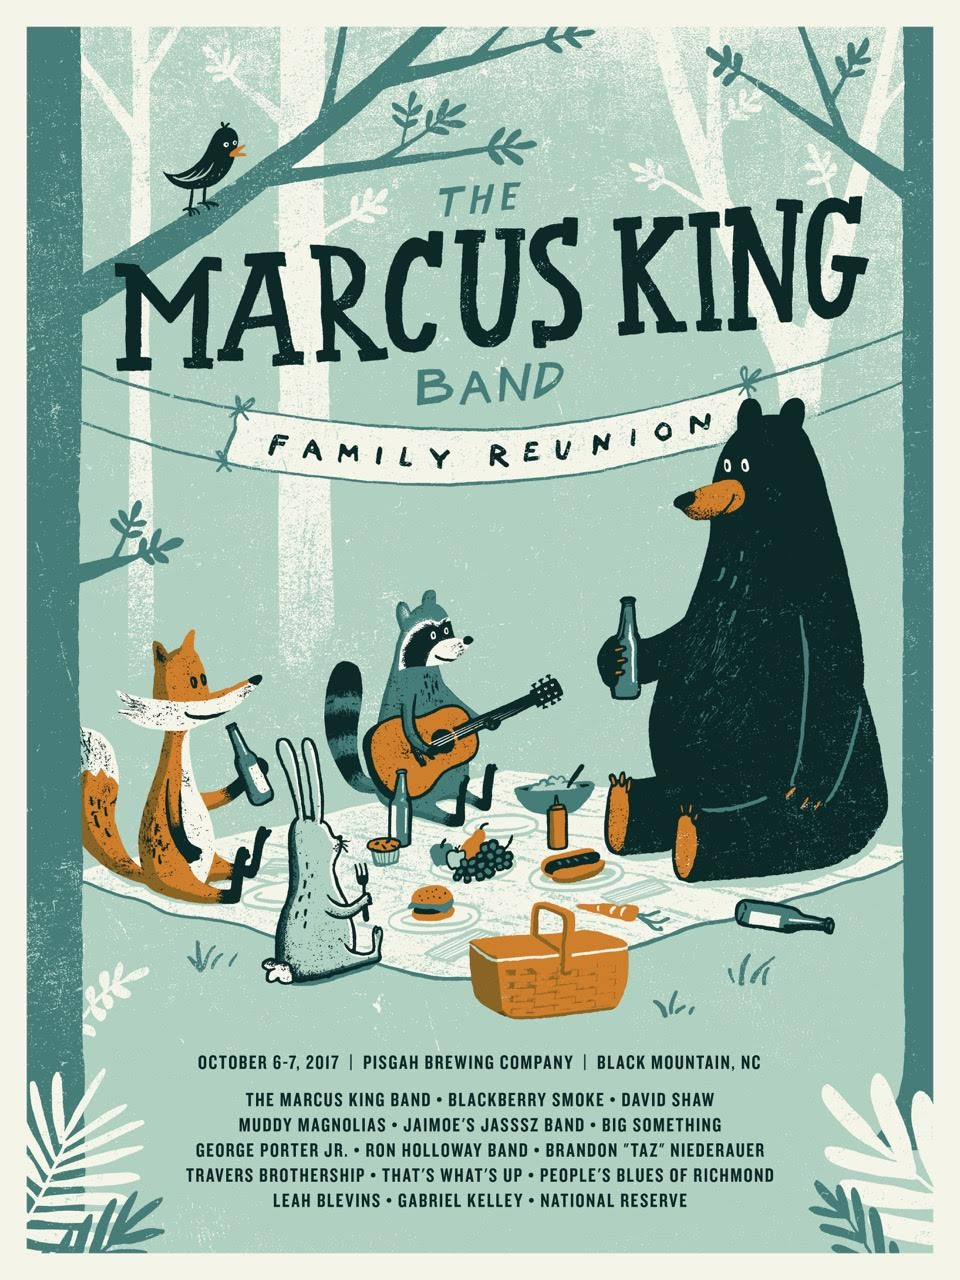 Marcus King Band Family Reunion.jpg